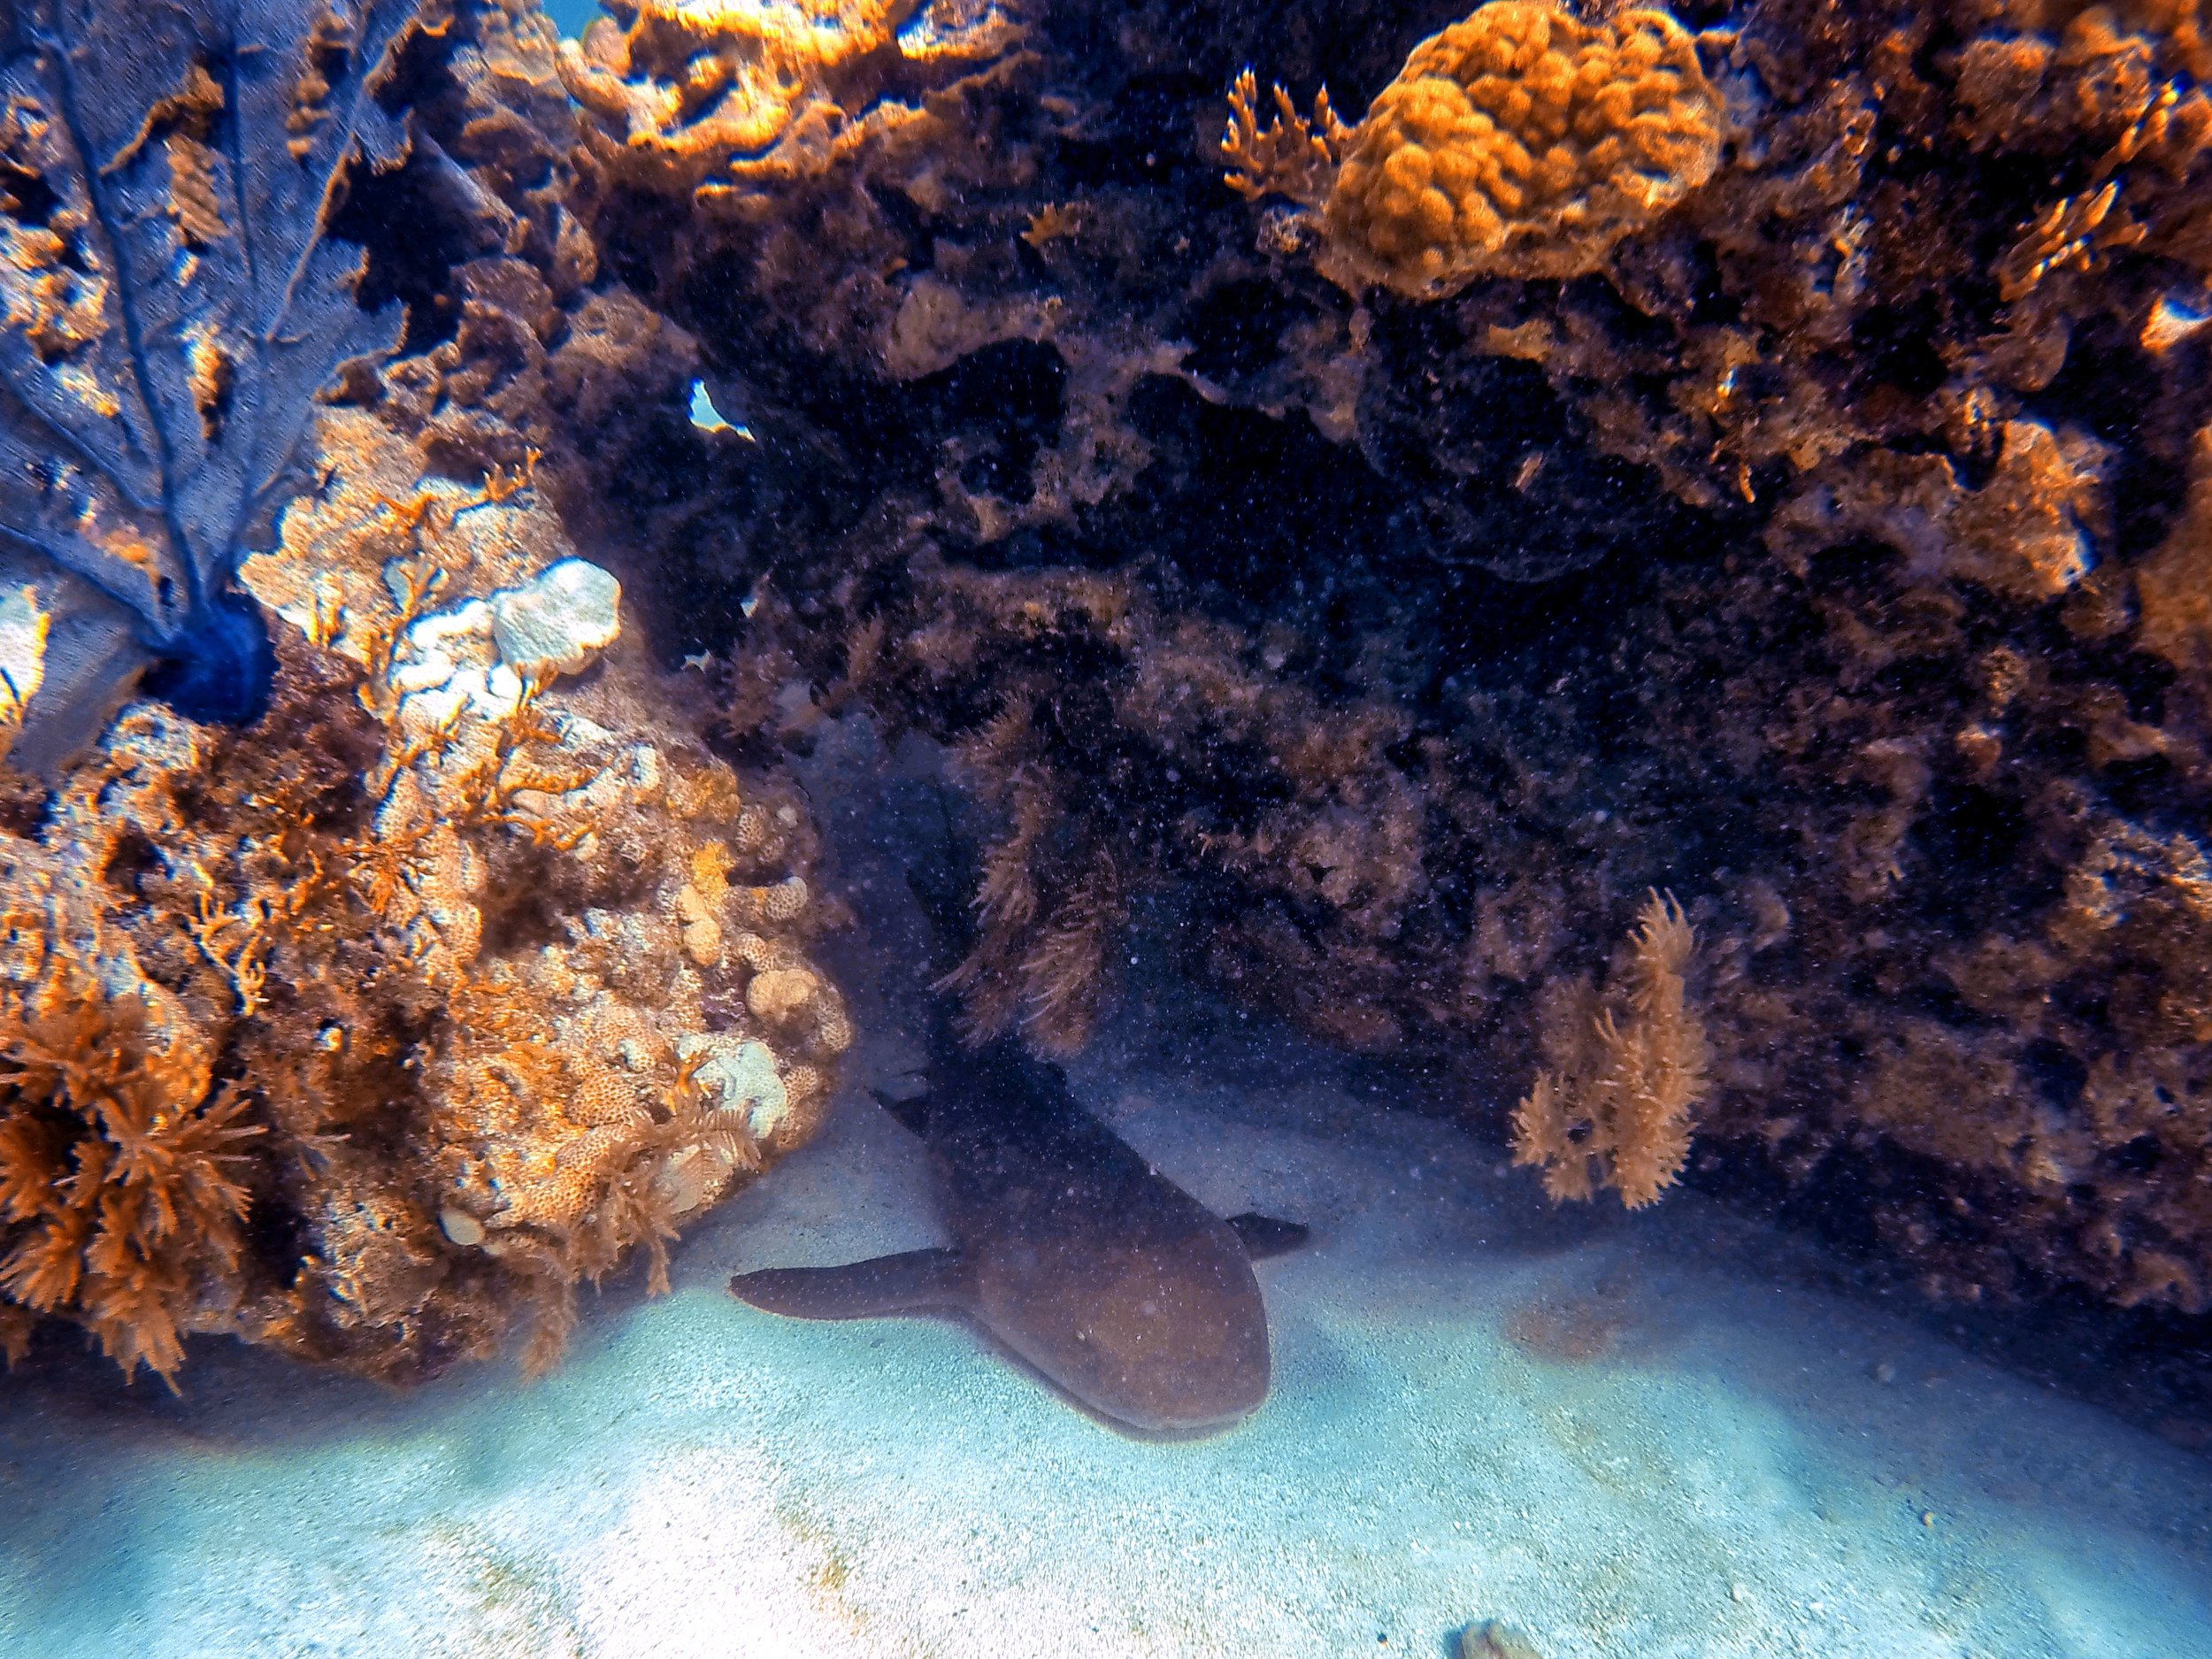 Check out this nurse shark sleeping under the molasses reef